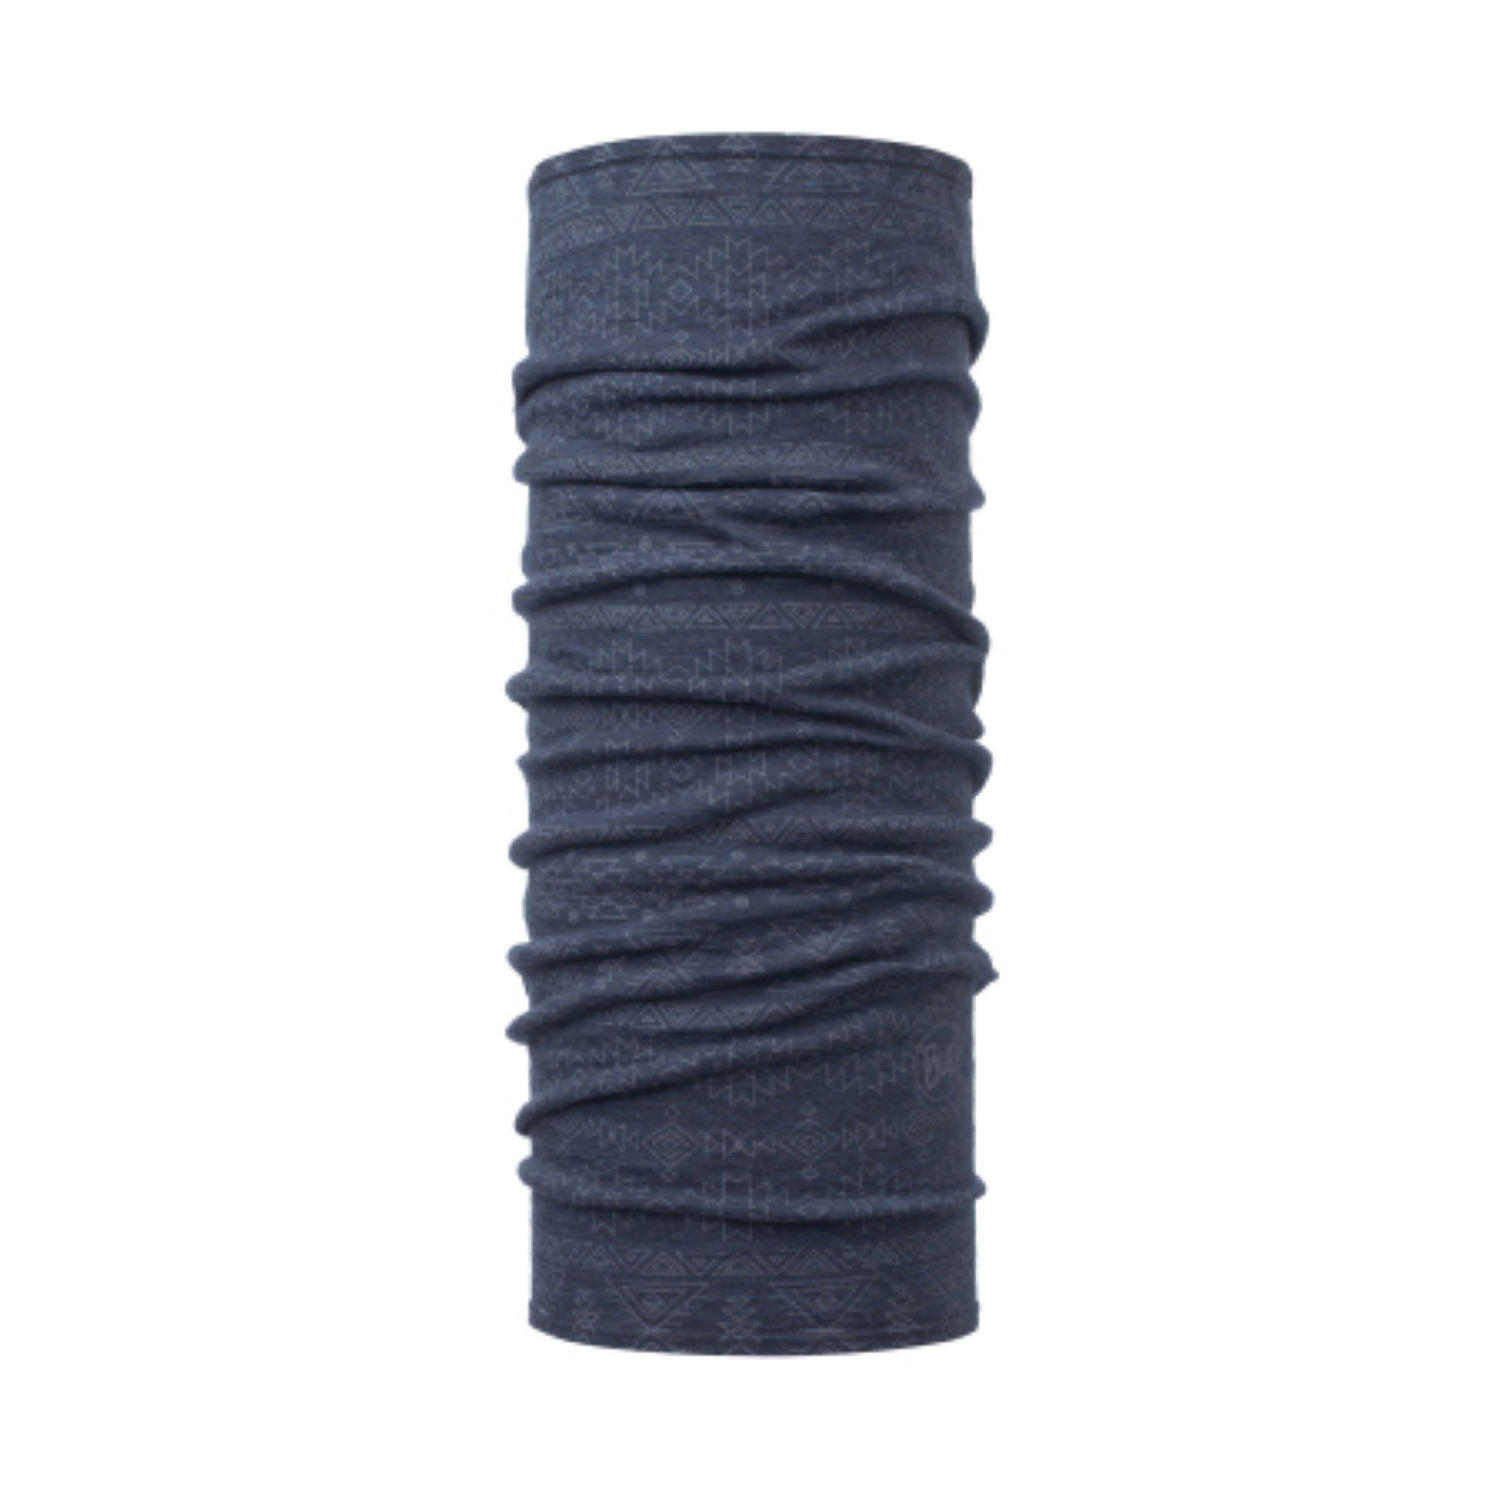 Бандана Buff Lightweight Merino Wool Edgy Denim (115399.788.10.00)